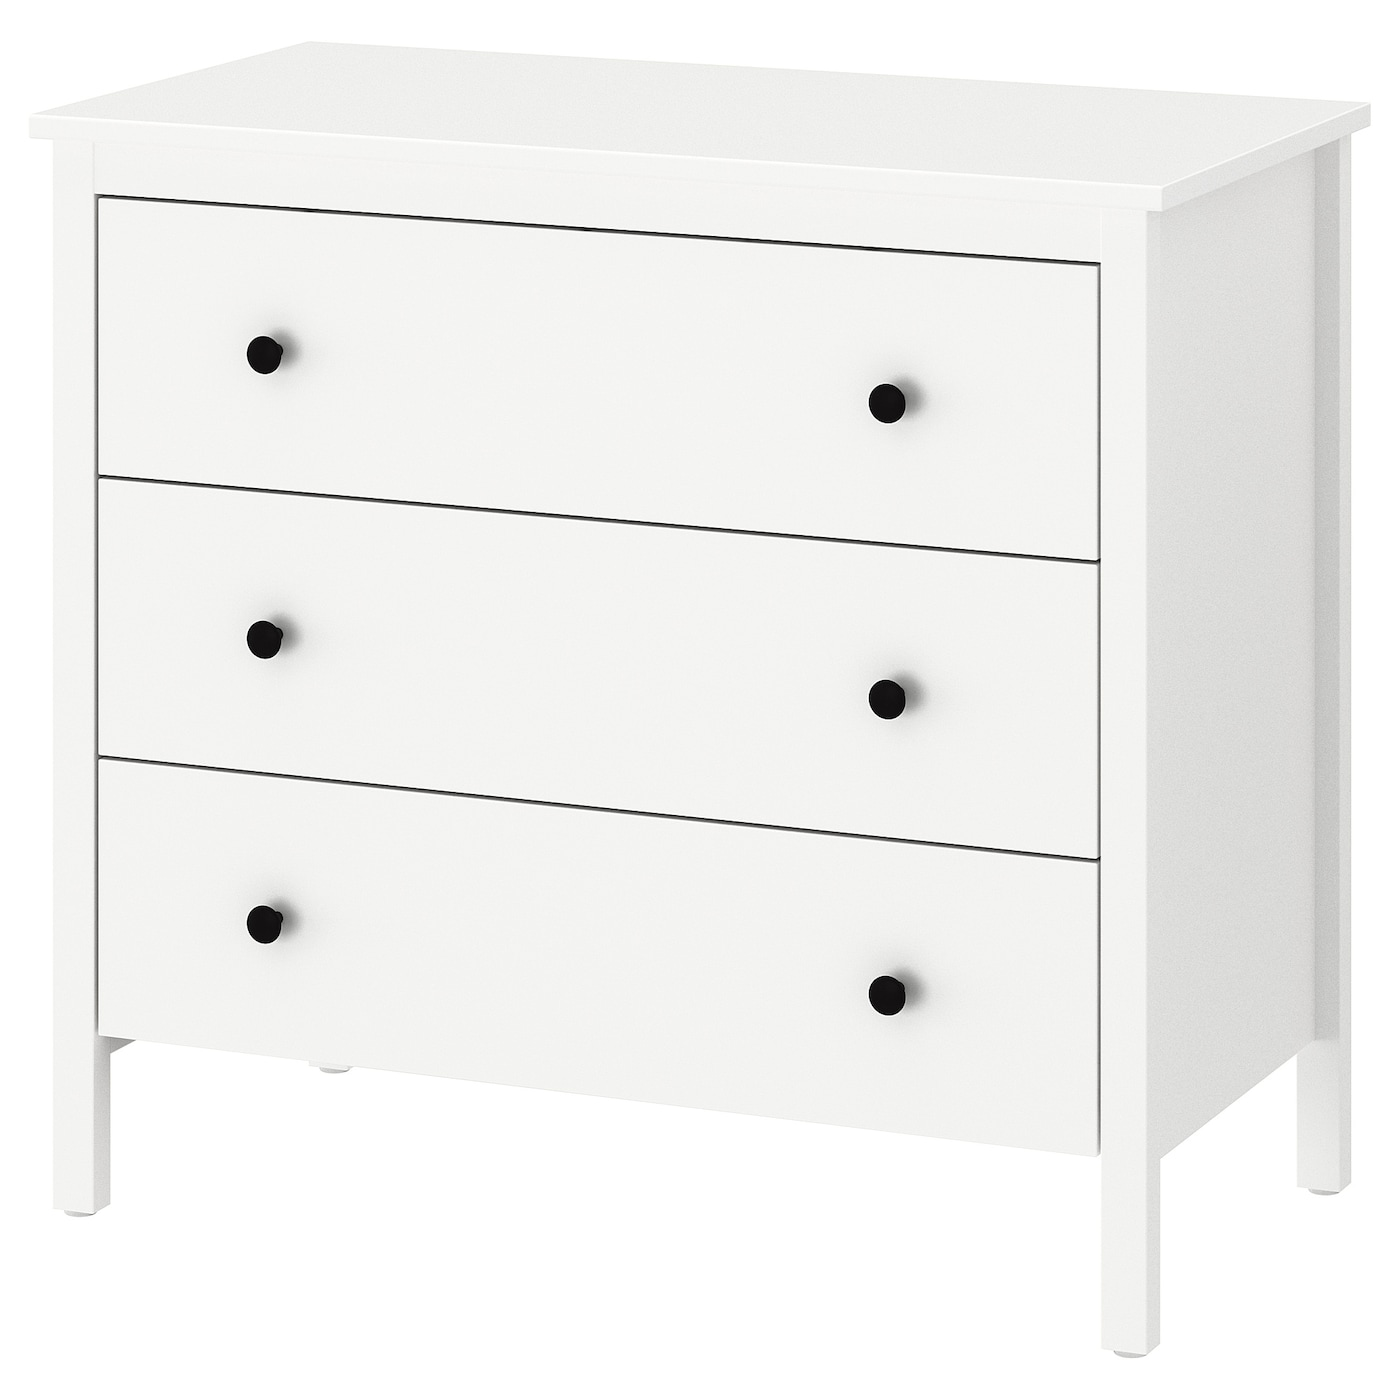 Furniture Ikea Koppang Chest Of 3 Drawers In White Bedroom Storage Kisetsu System Co Jp